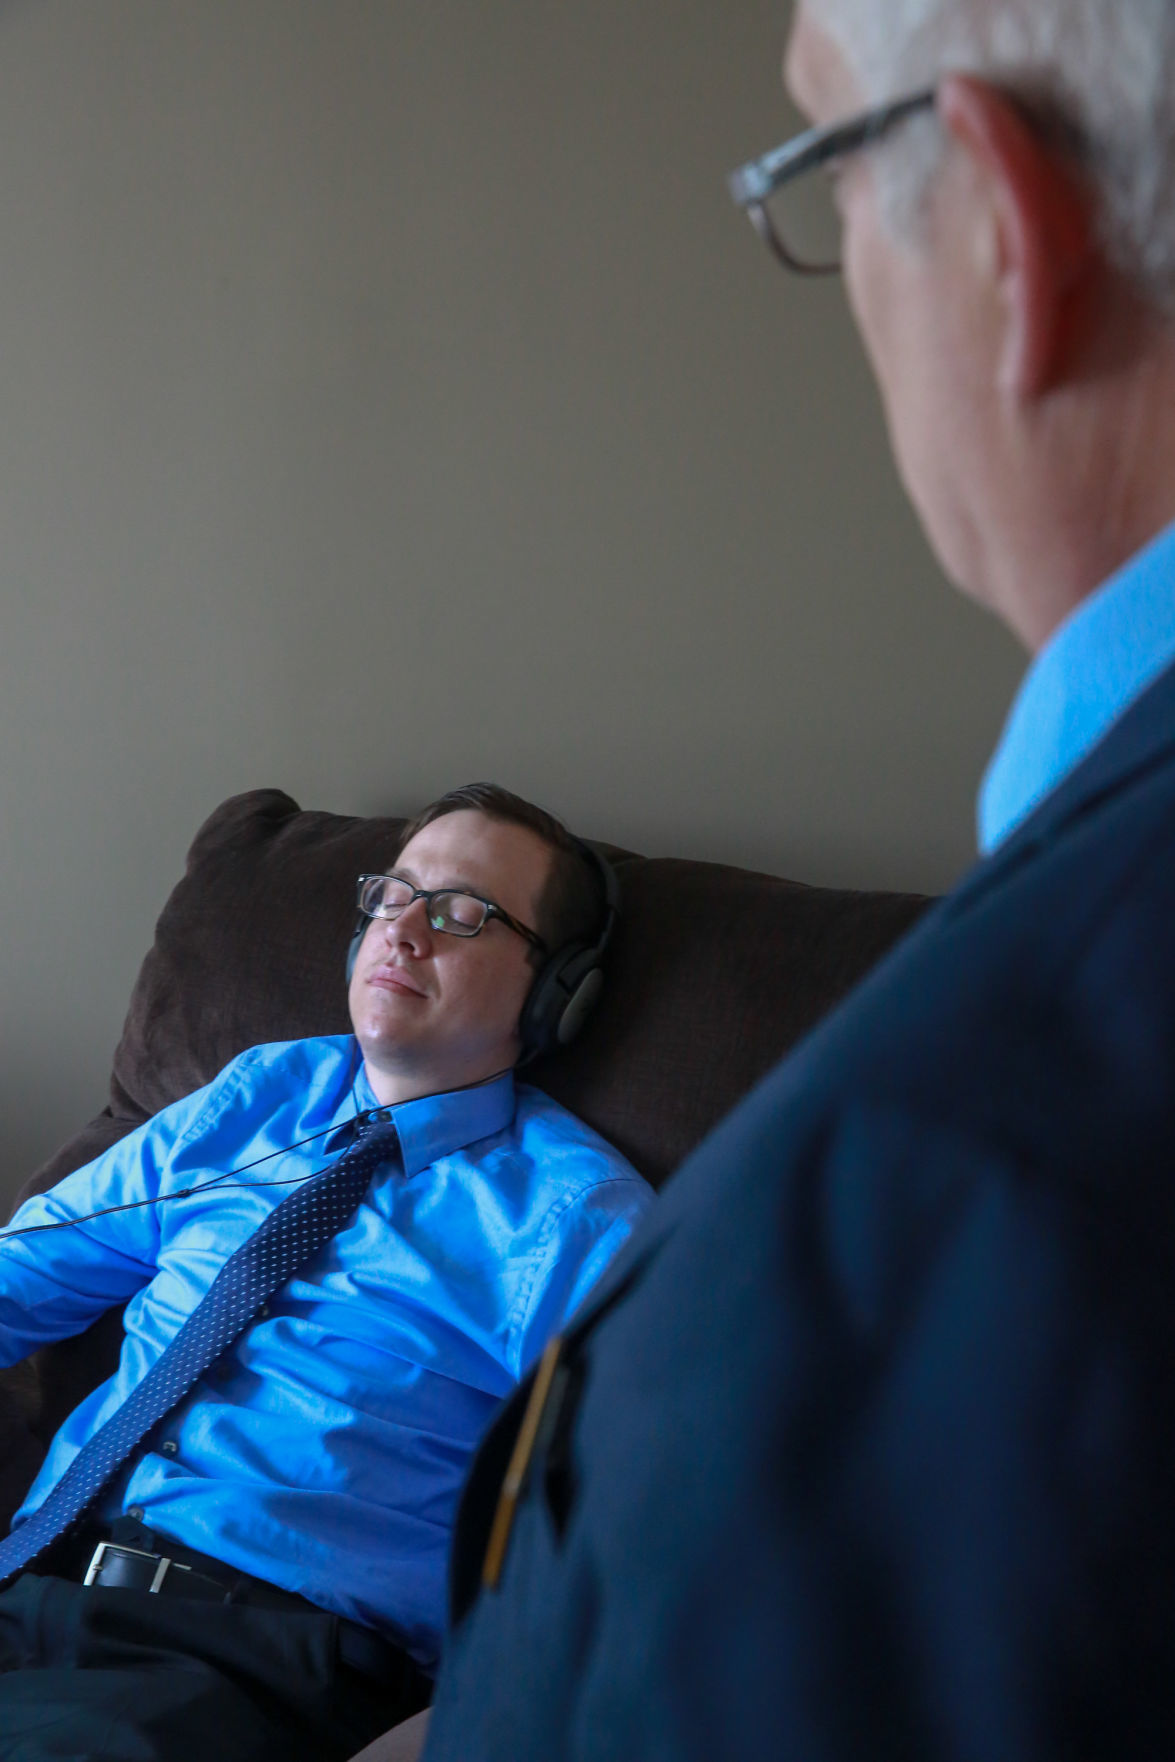 Northwest Indiana Residents Use Hypnosis To Improve Their Health